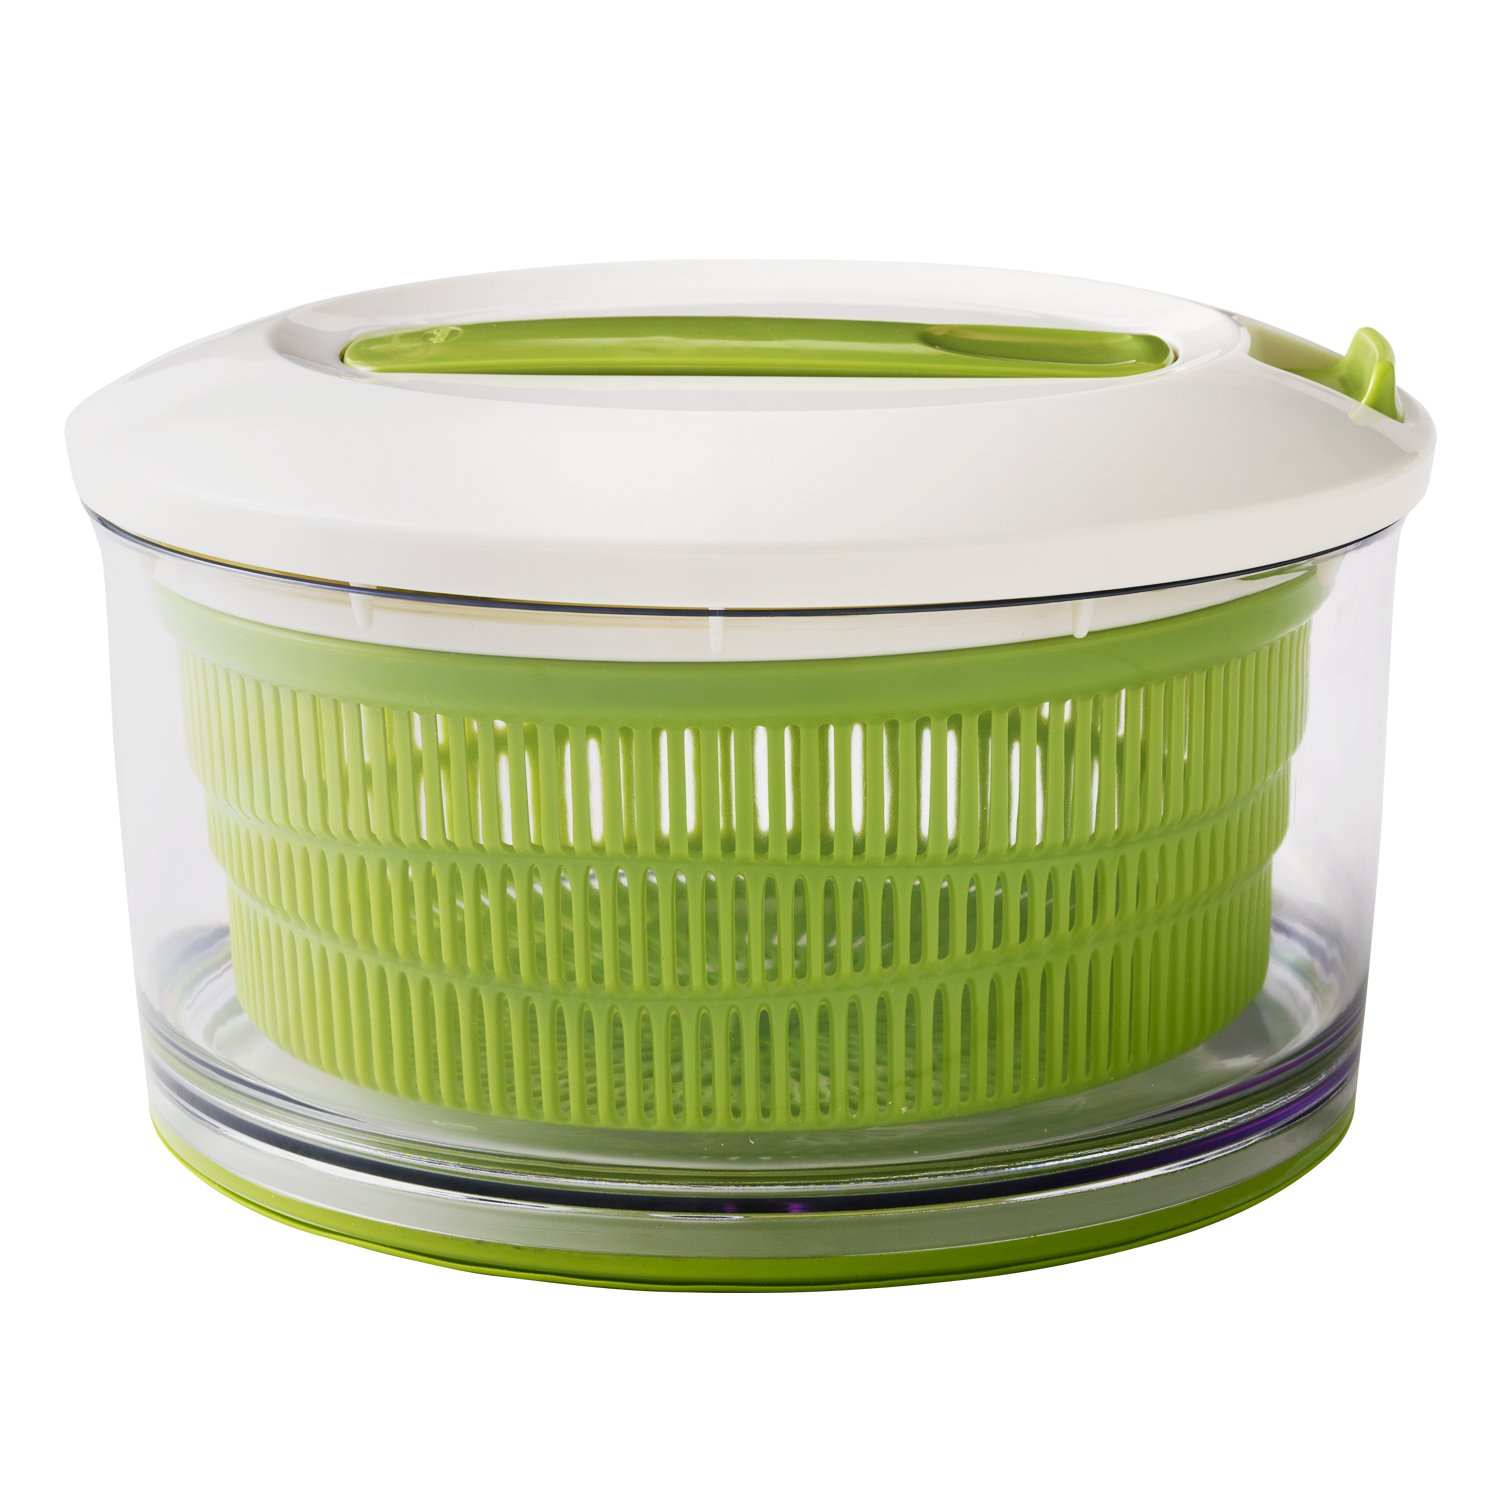 Chef'n Spin Cycle Salad Spinner with No Slip Silicone Base, Large, Arugula